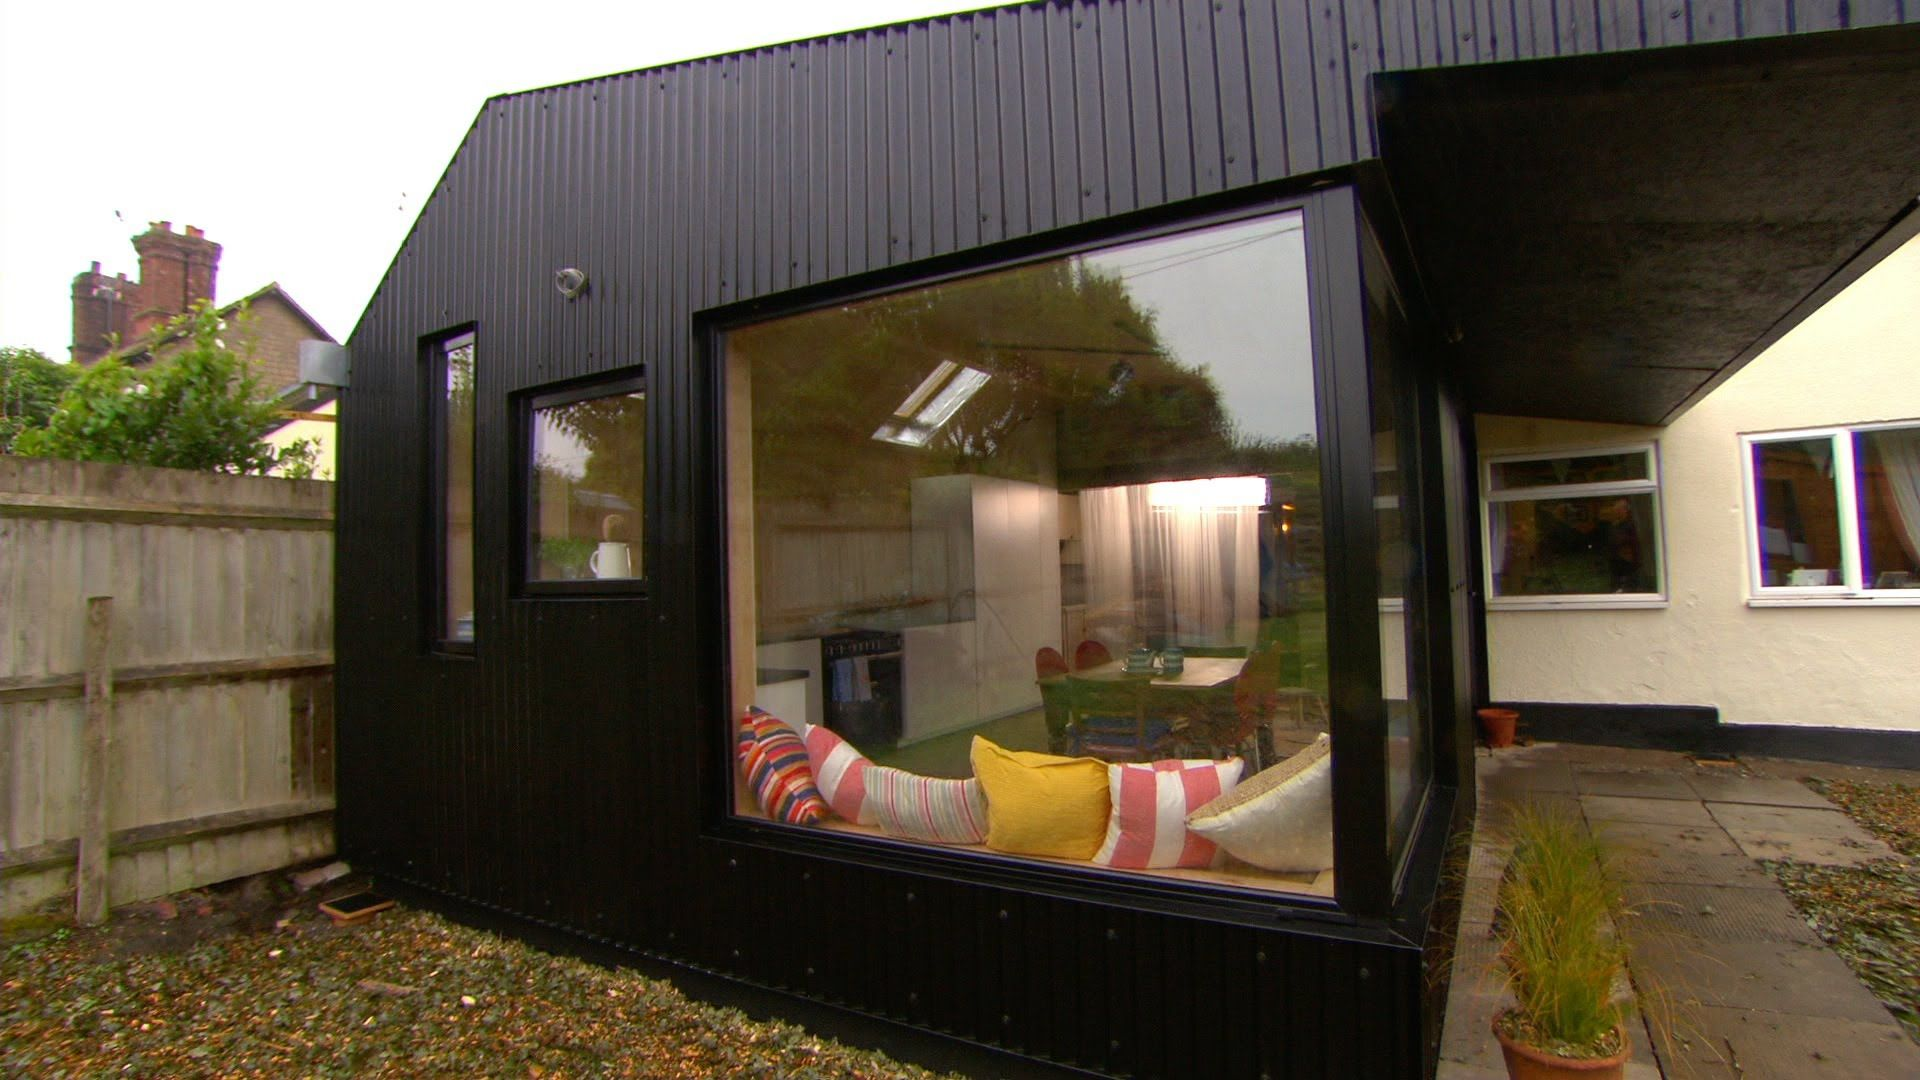 Building A Low Cost Extension Using Farmhouse Materials